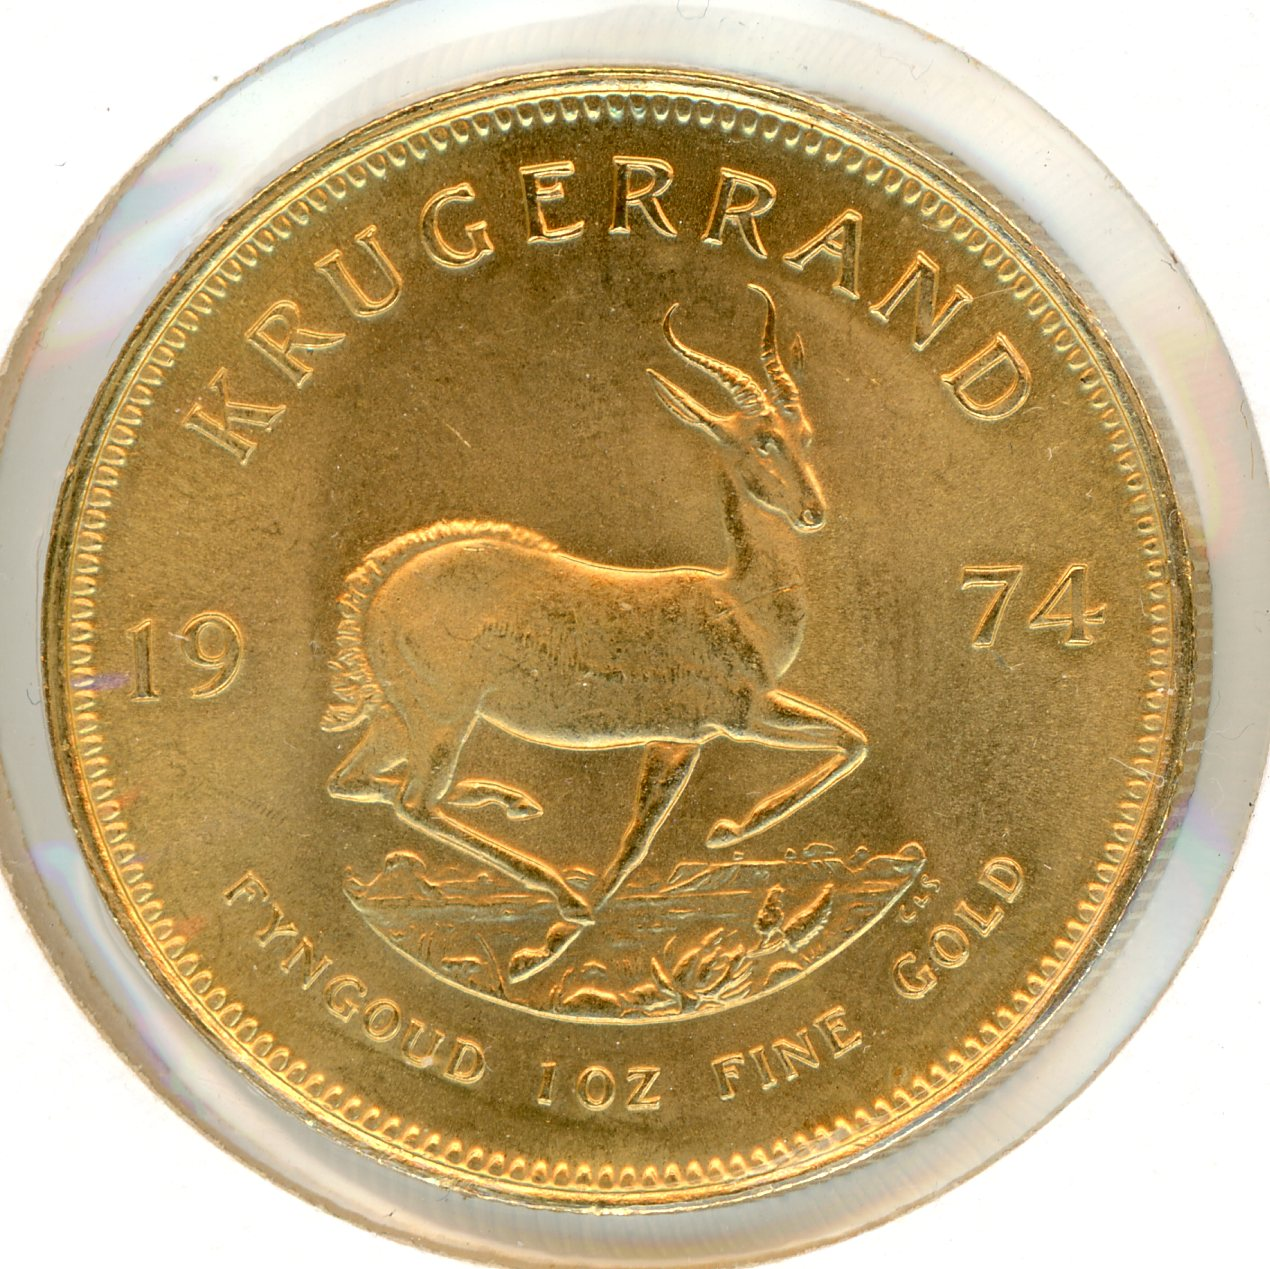 Thumbnail for 1974 South Africa 1oz Gold Krugerrand